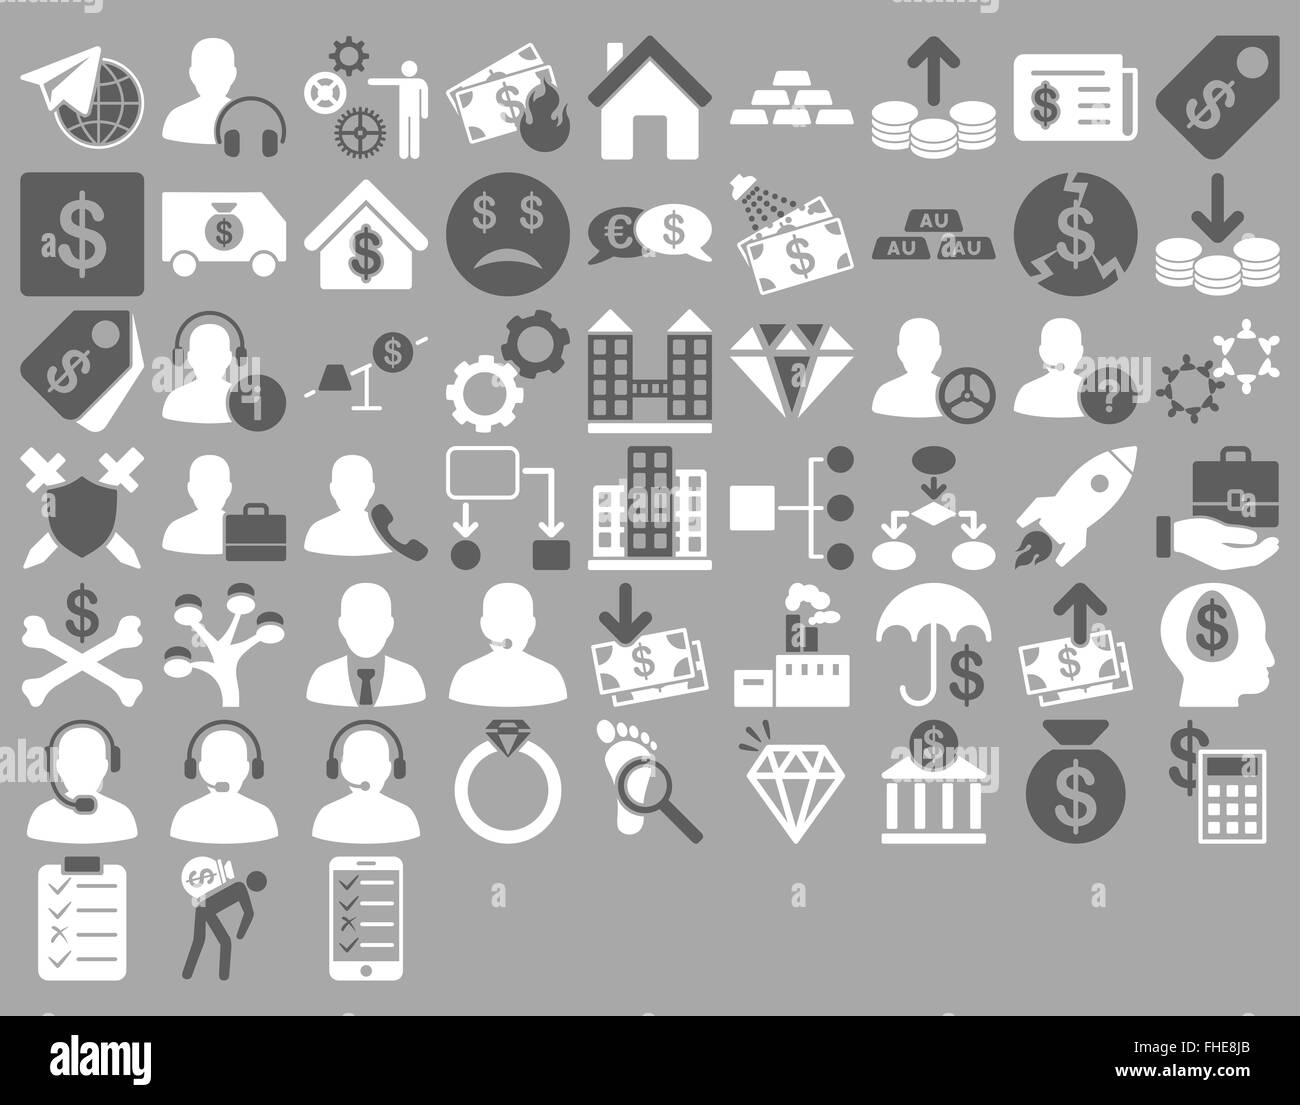 Commerce Icon Set - Stock Image